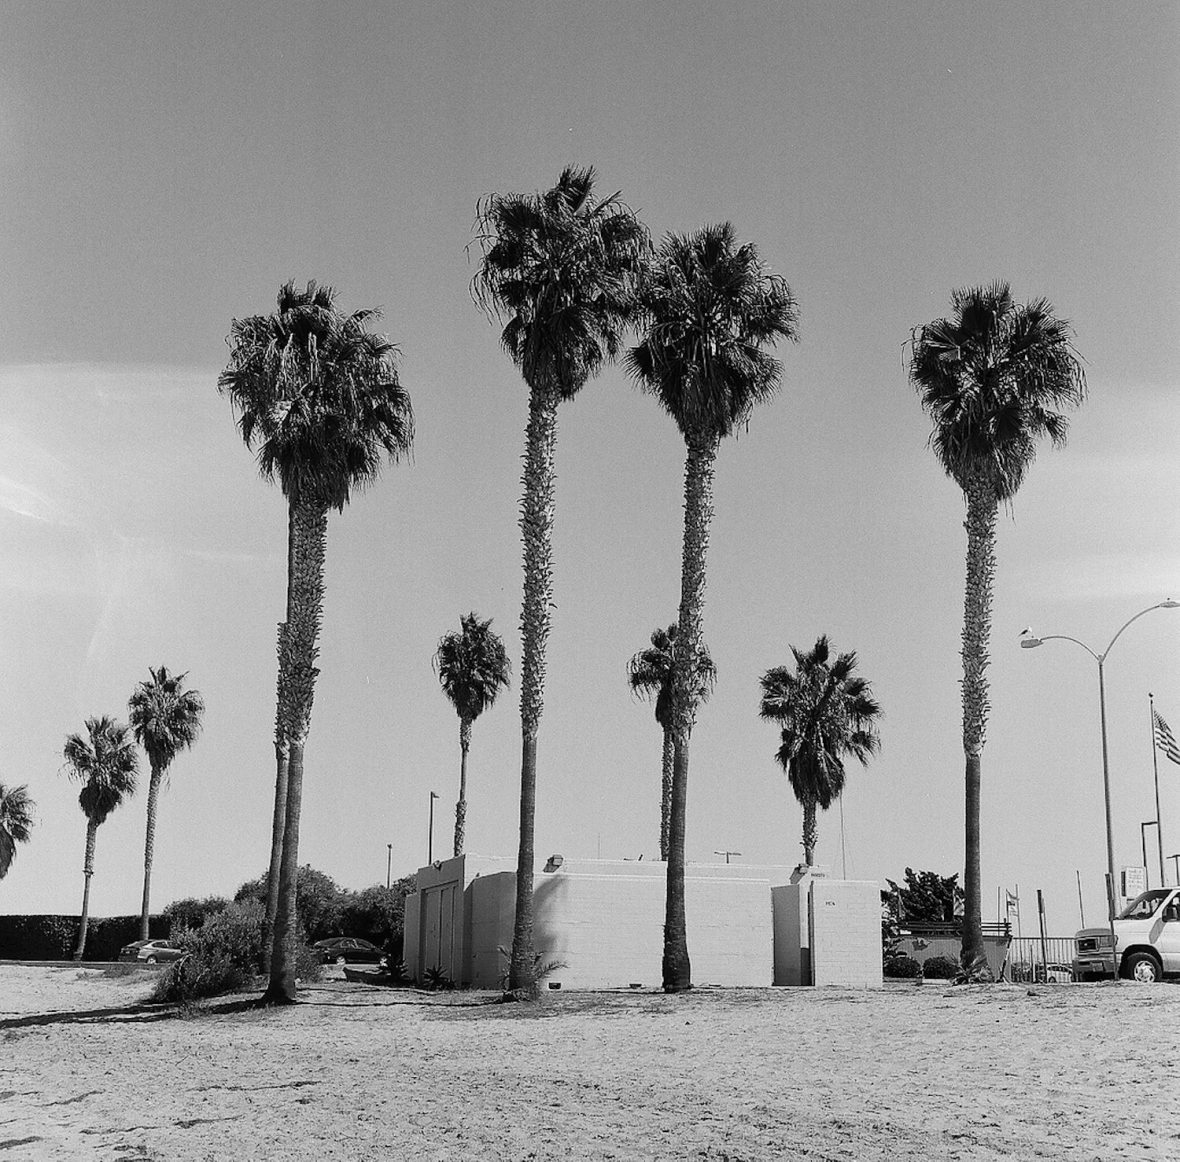 Medium format 120 mm monochrome film photography Brutalist architecture and palm trees in Mission Bay, San Diego California